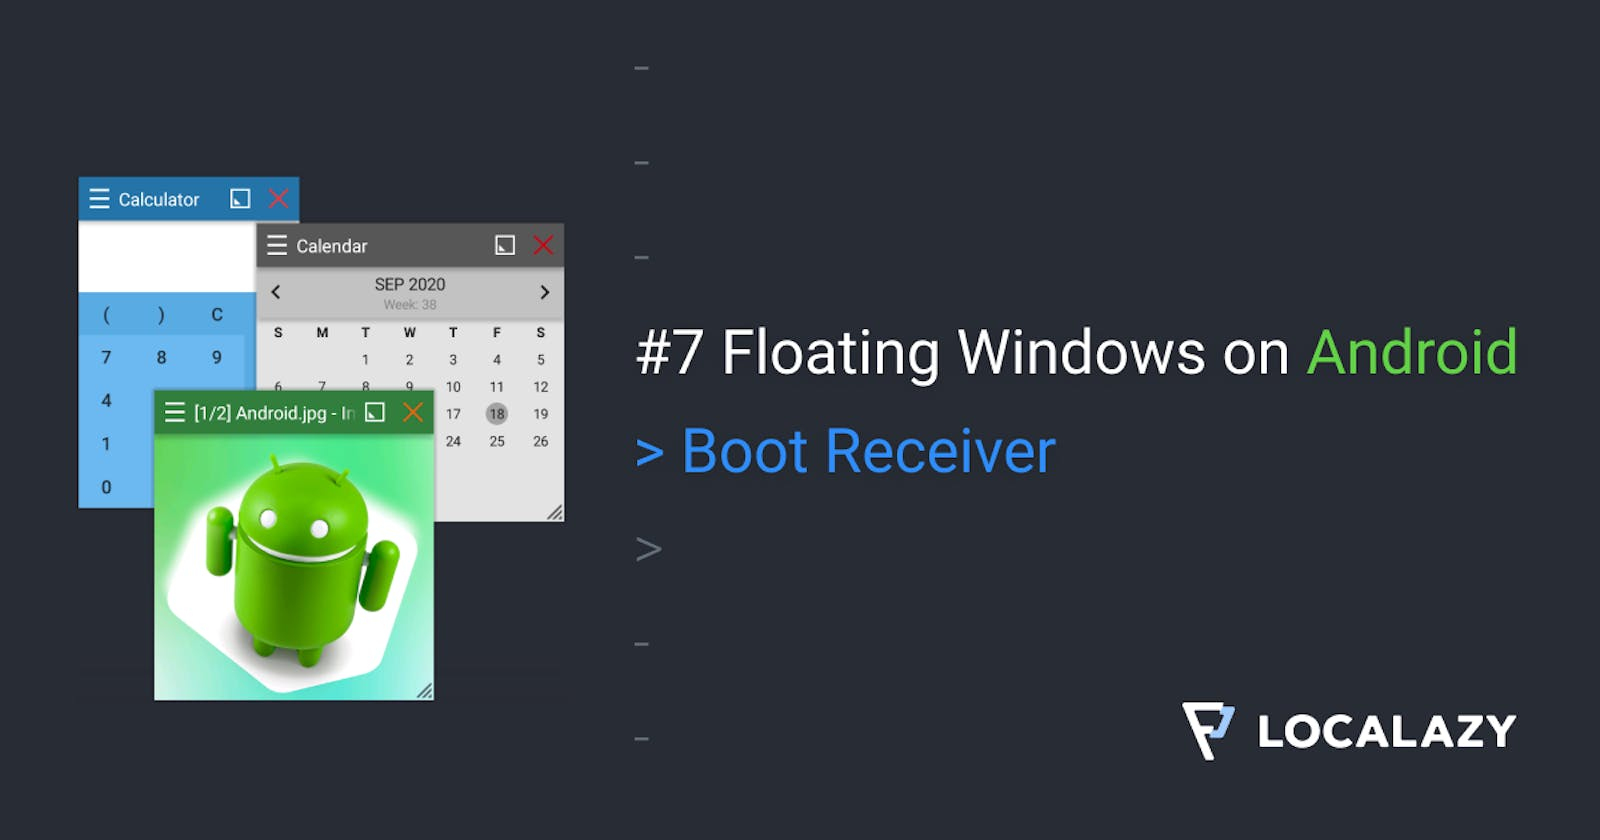 #7 Floating Windows on Android: Boot Receiver